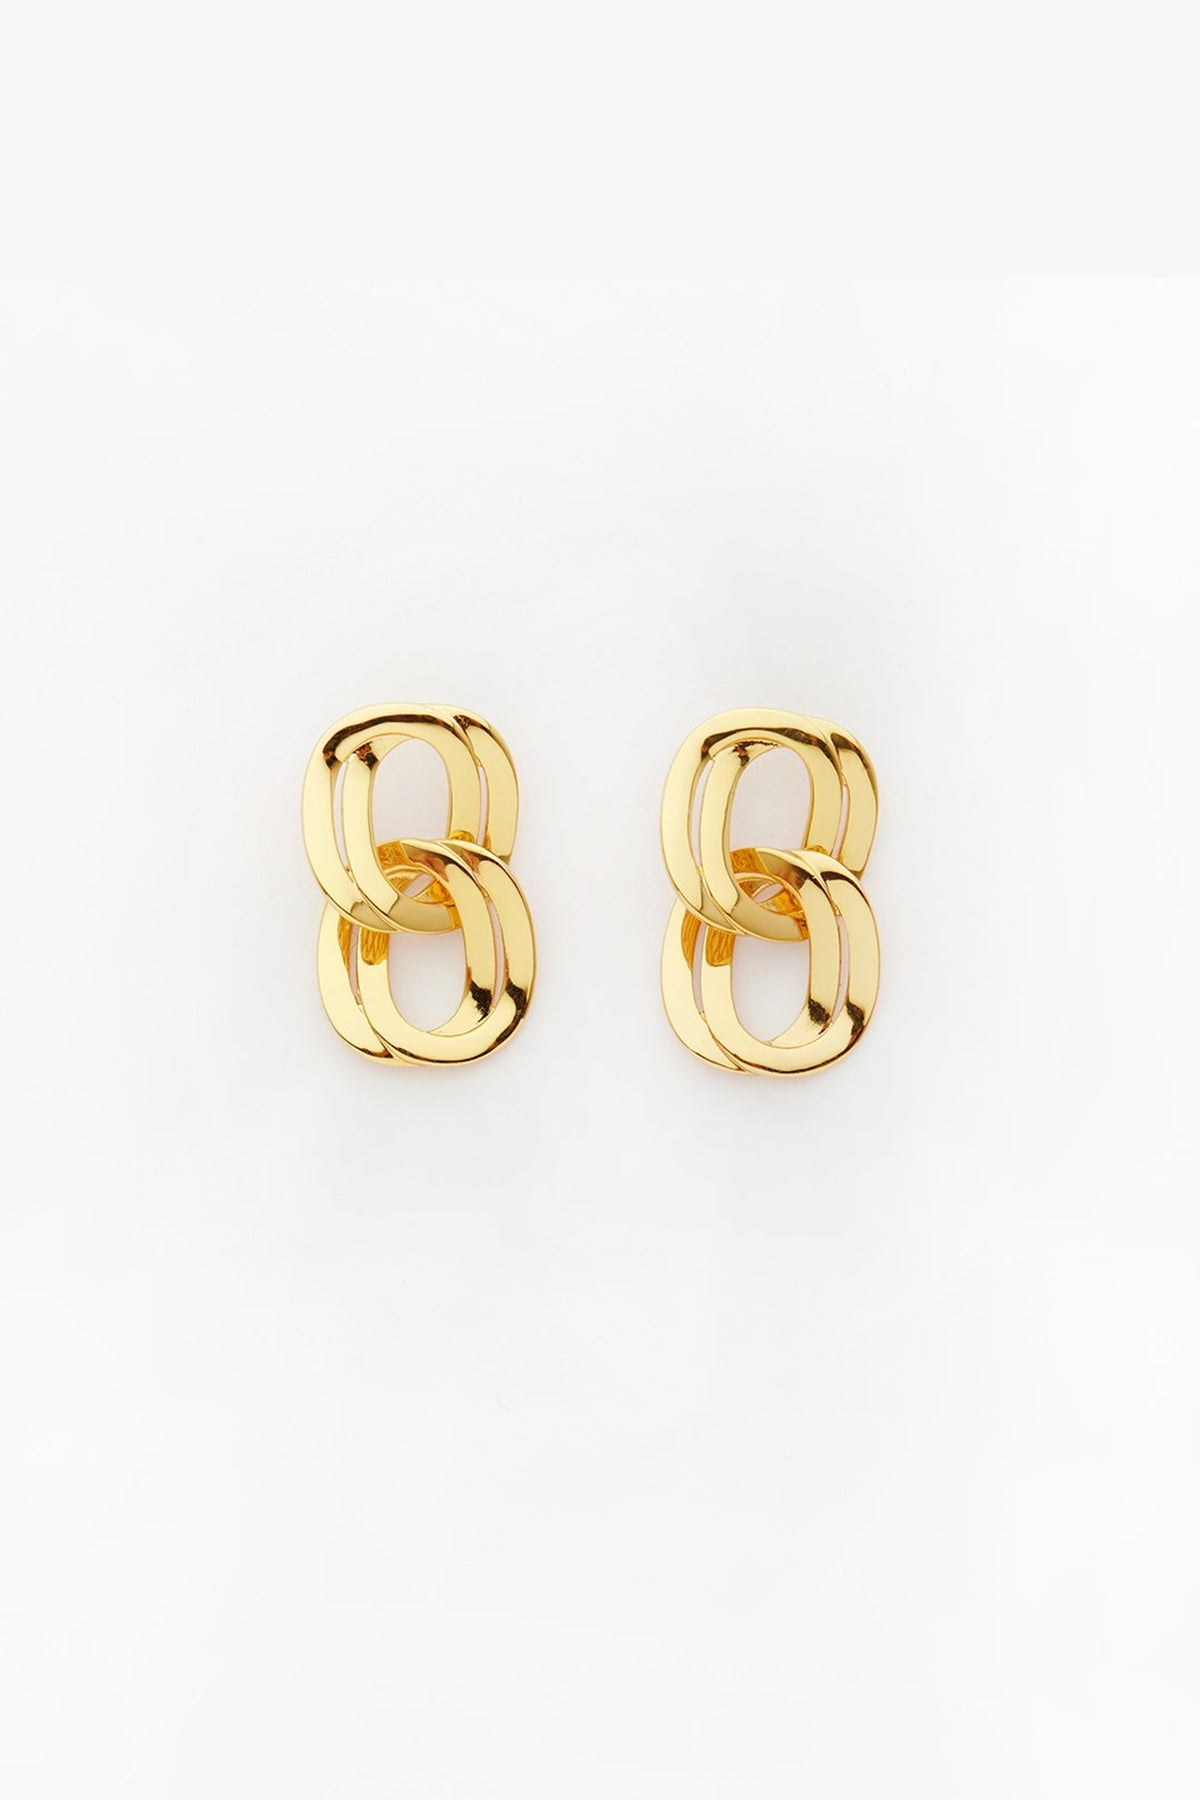 Reliquia Cue Earrings